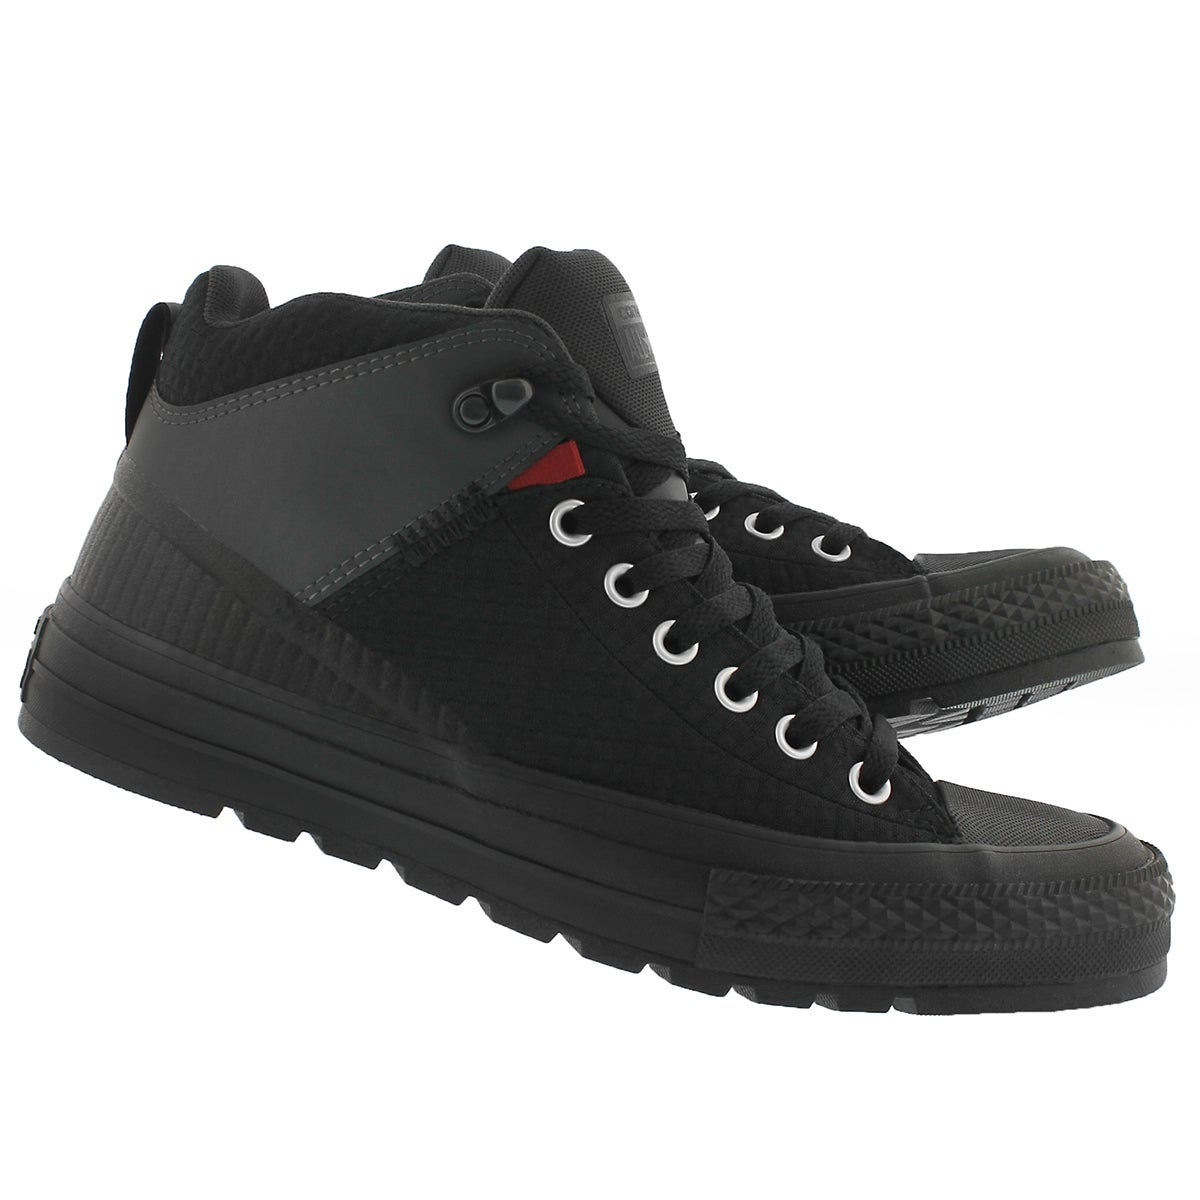 Mns CT A/S Street black/red boot